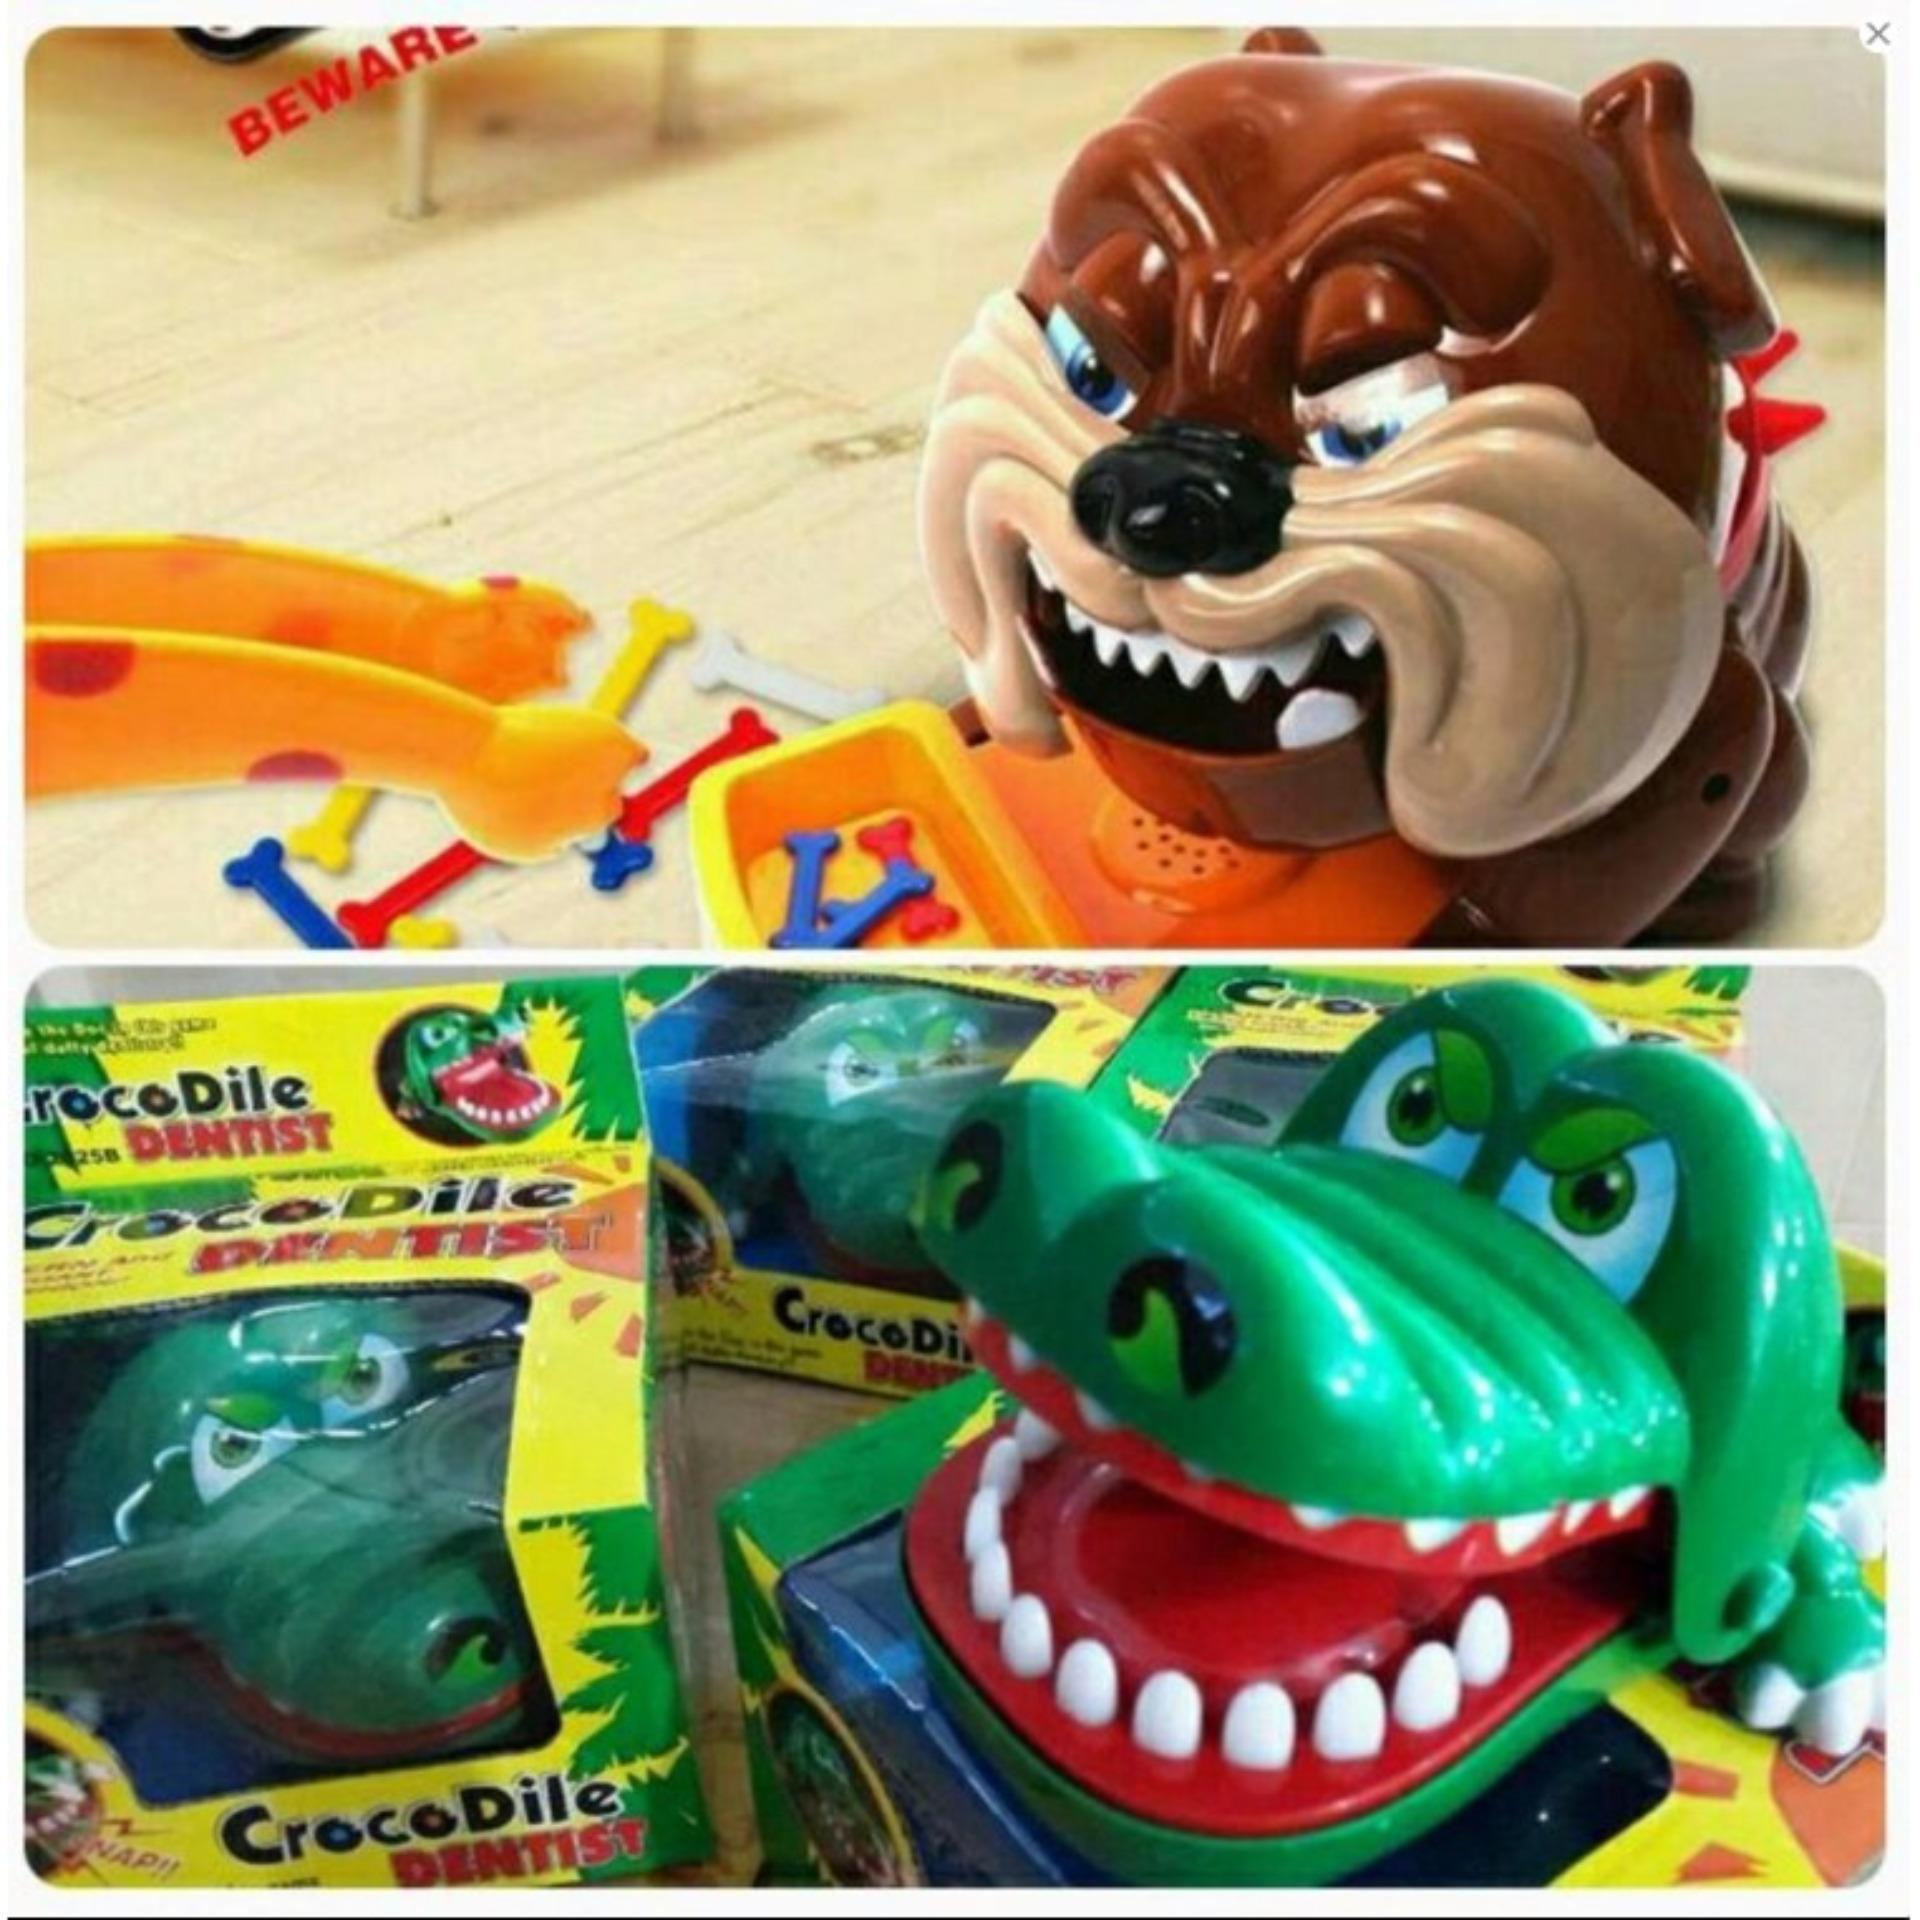 Sloof King Pirate Roulette Game Crocodile Dentist Bad Dog 3 In 1 Packet Asli